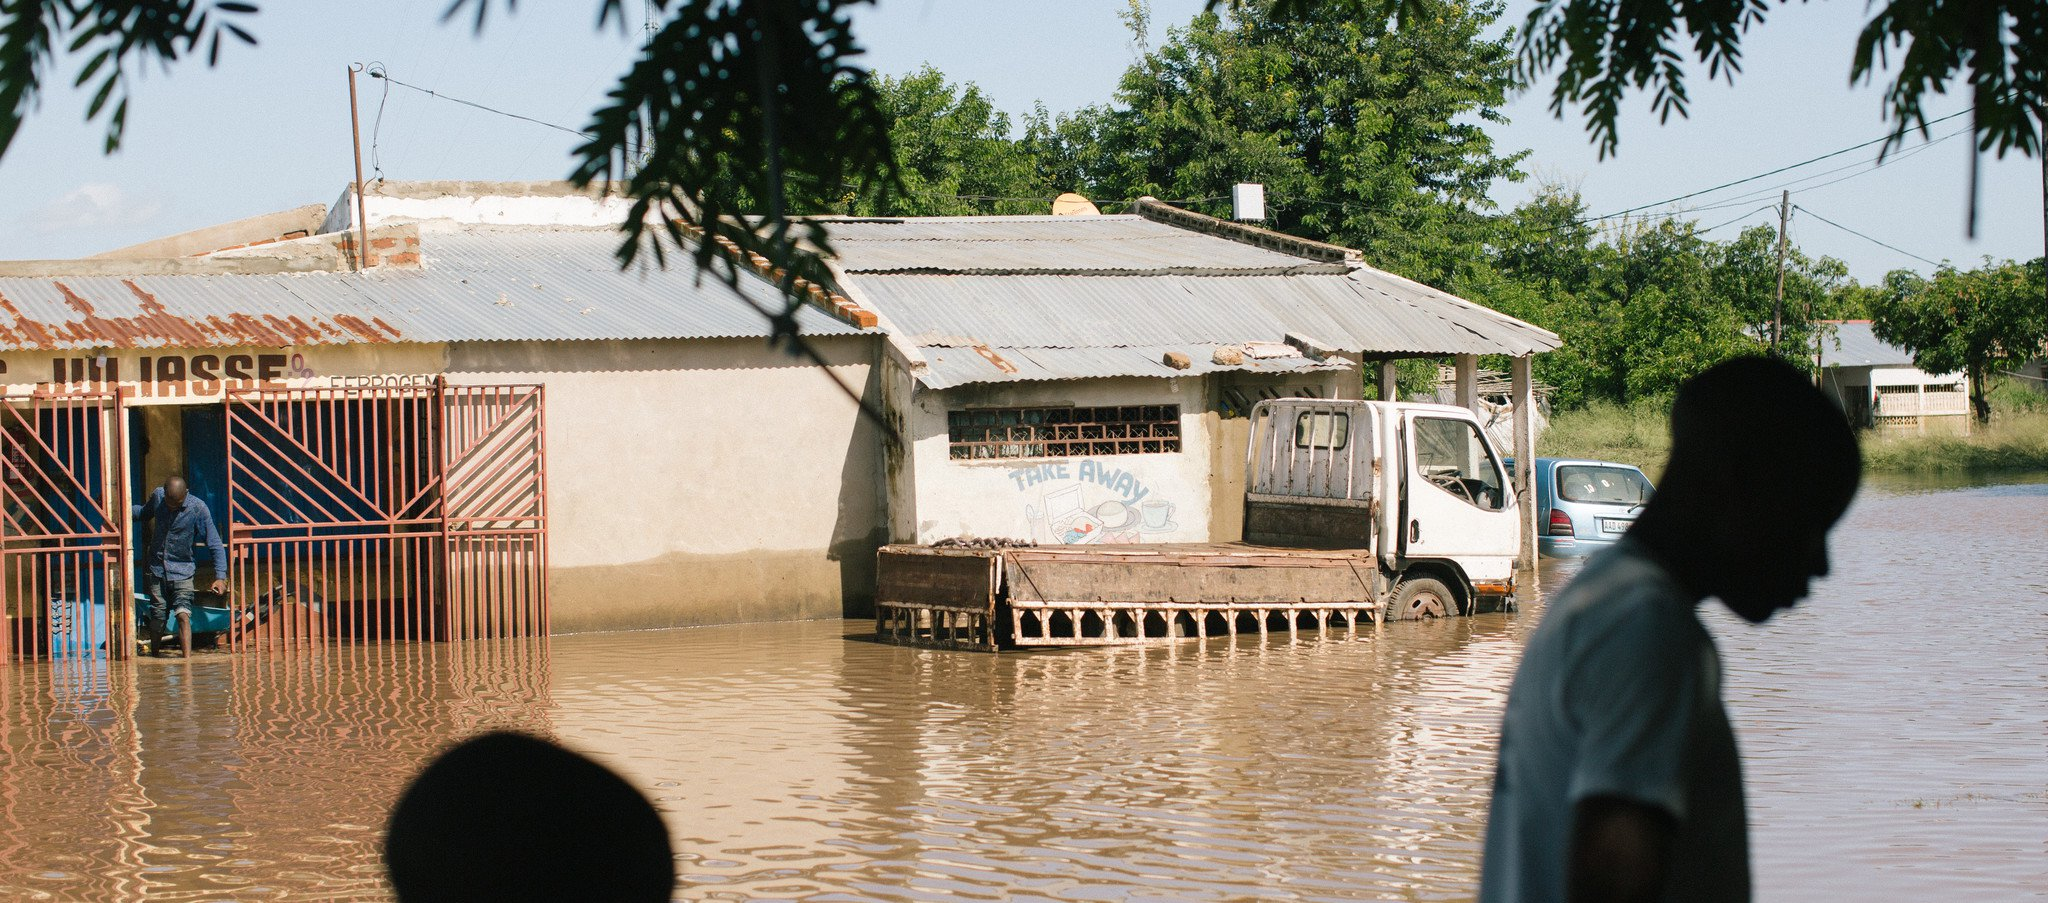 Flooded_shops_and_homes_in_Lamego_District.jpg